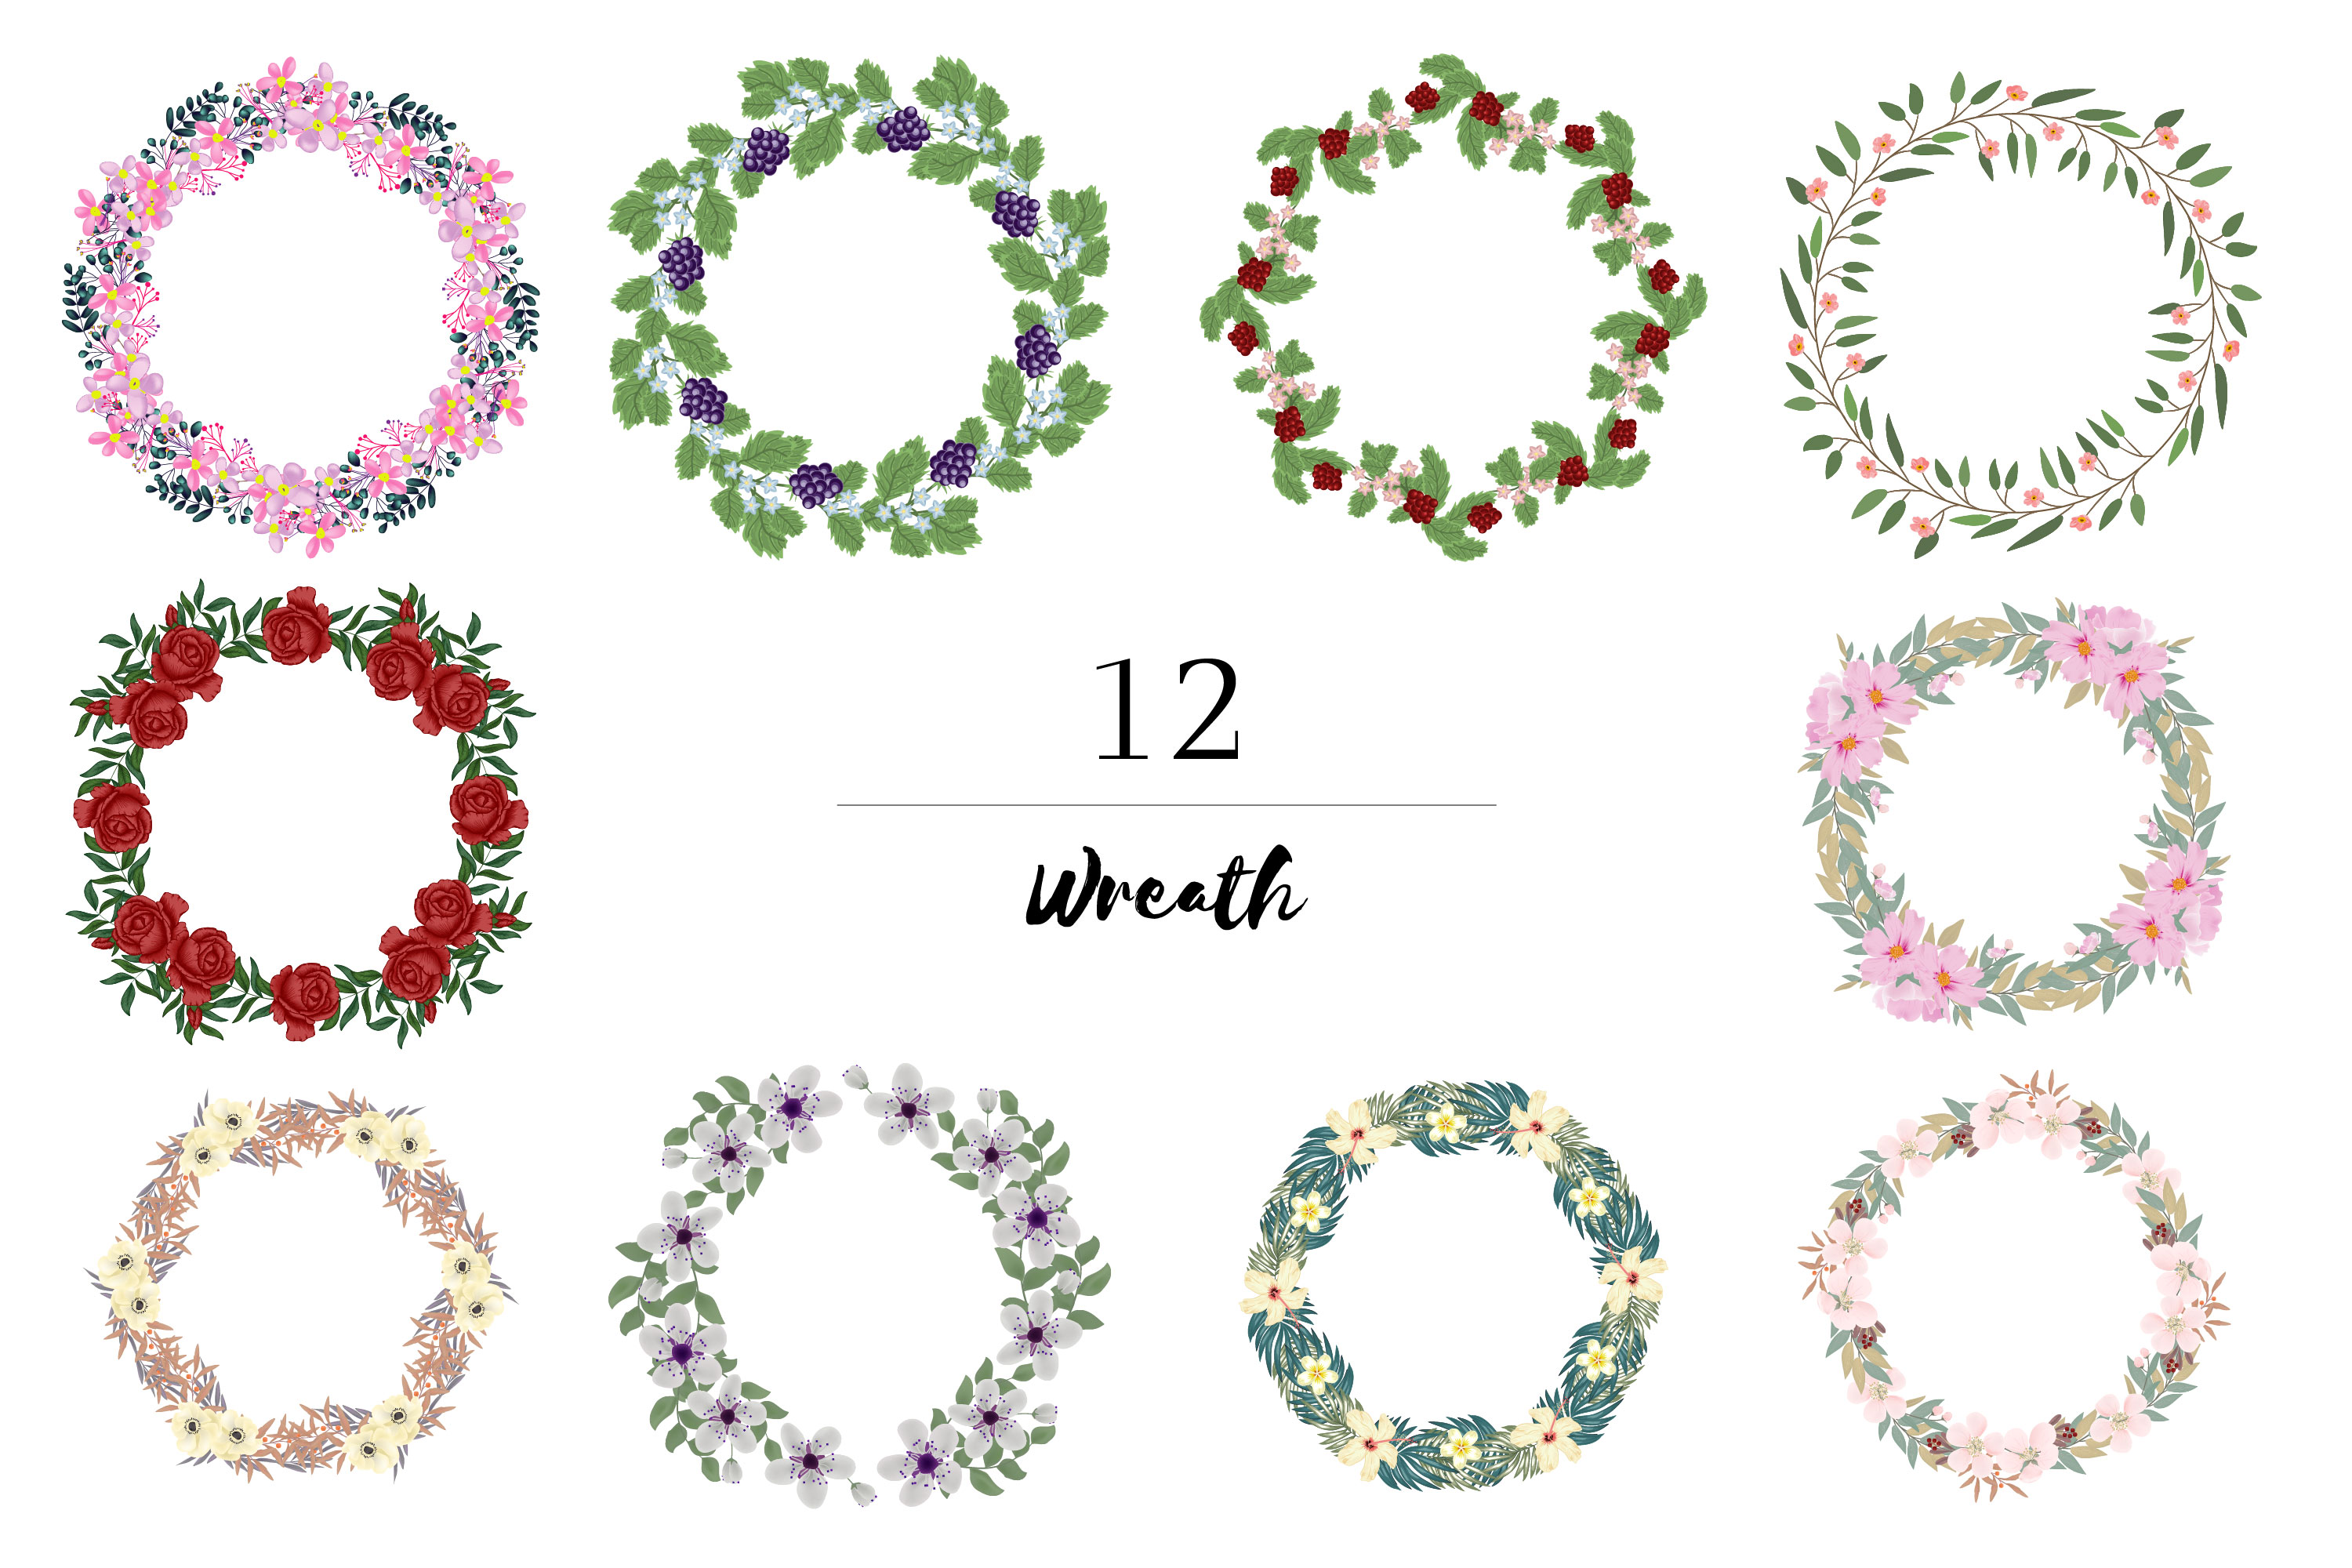 150 Flower and Floral Vector Illustration Element example image 3